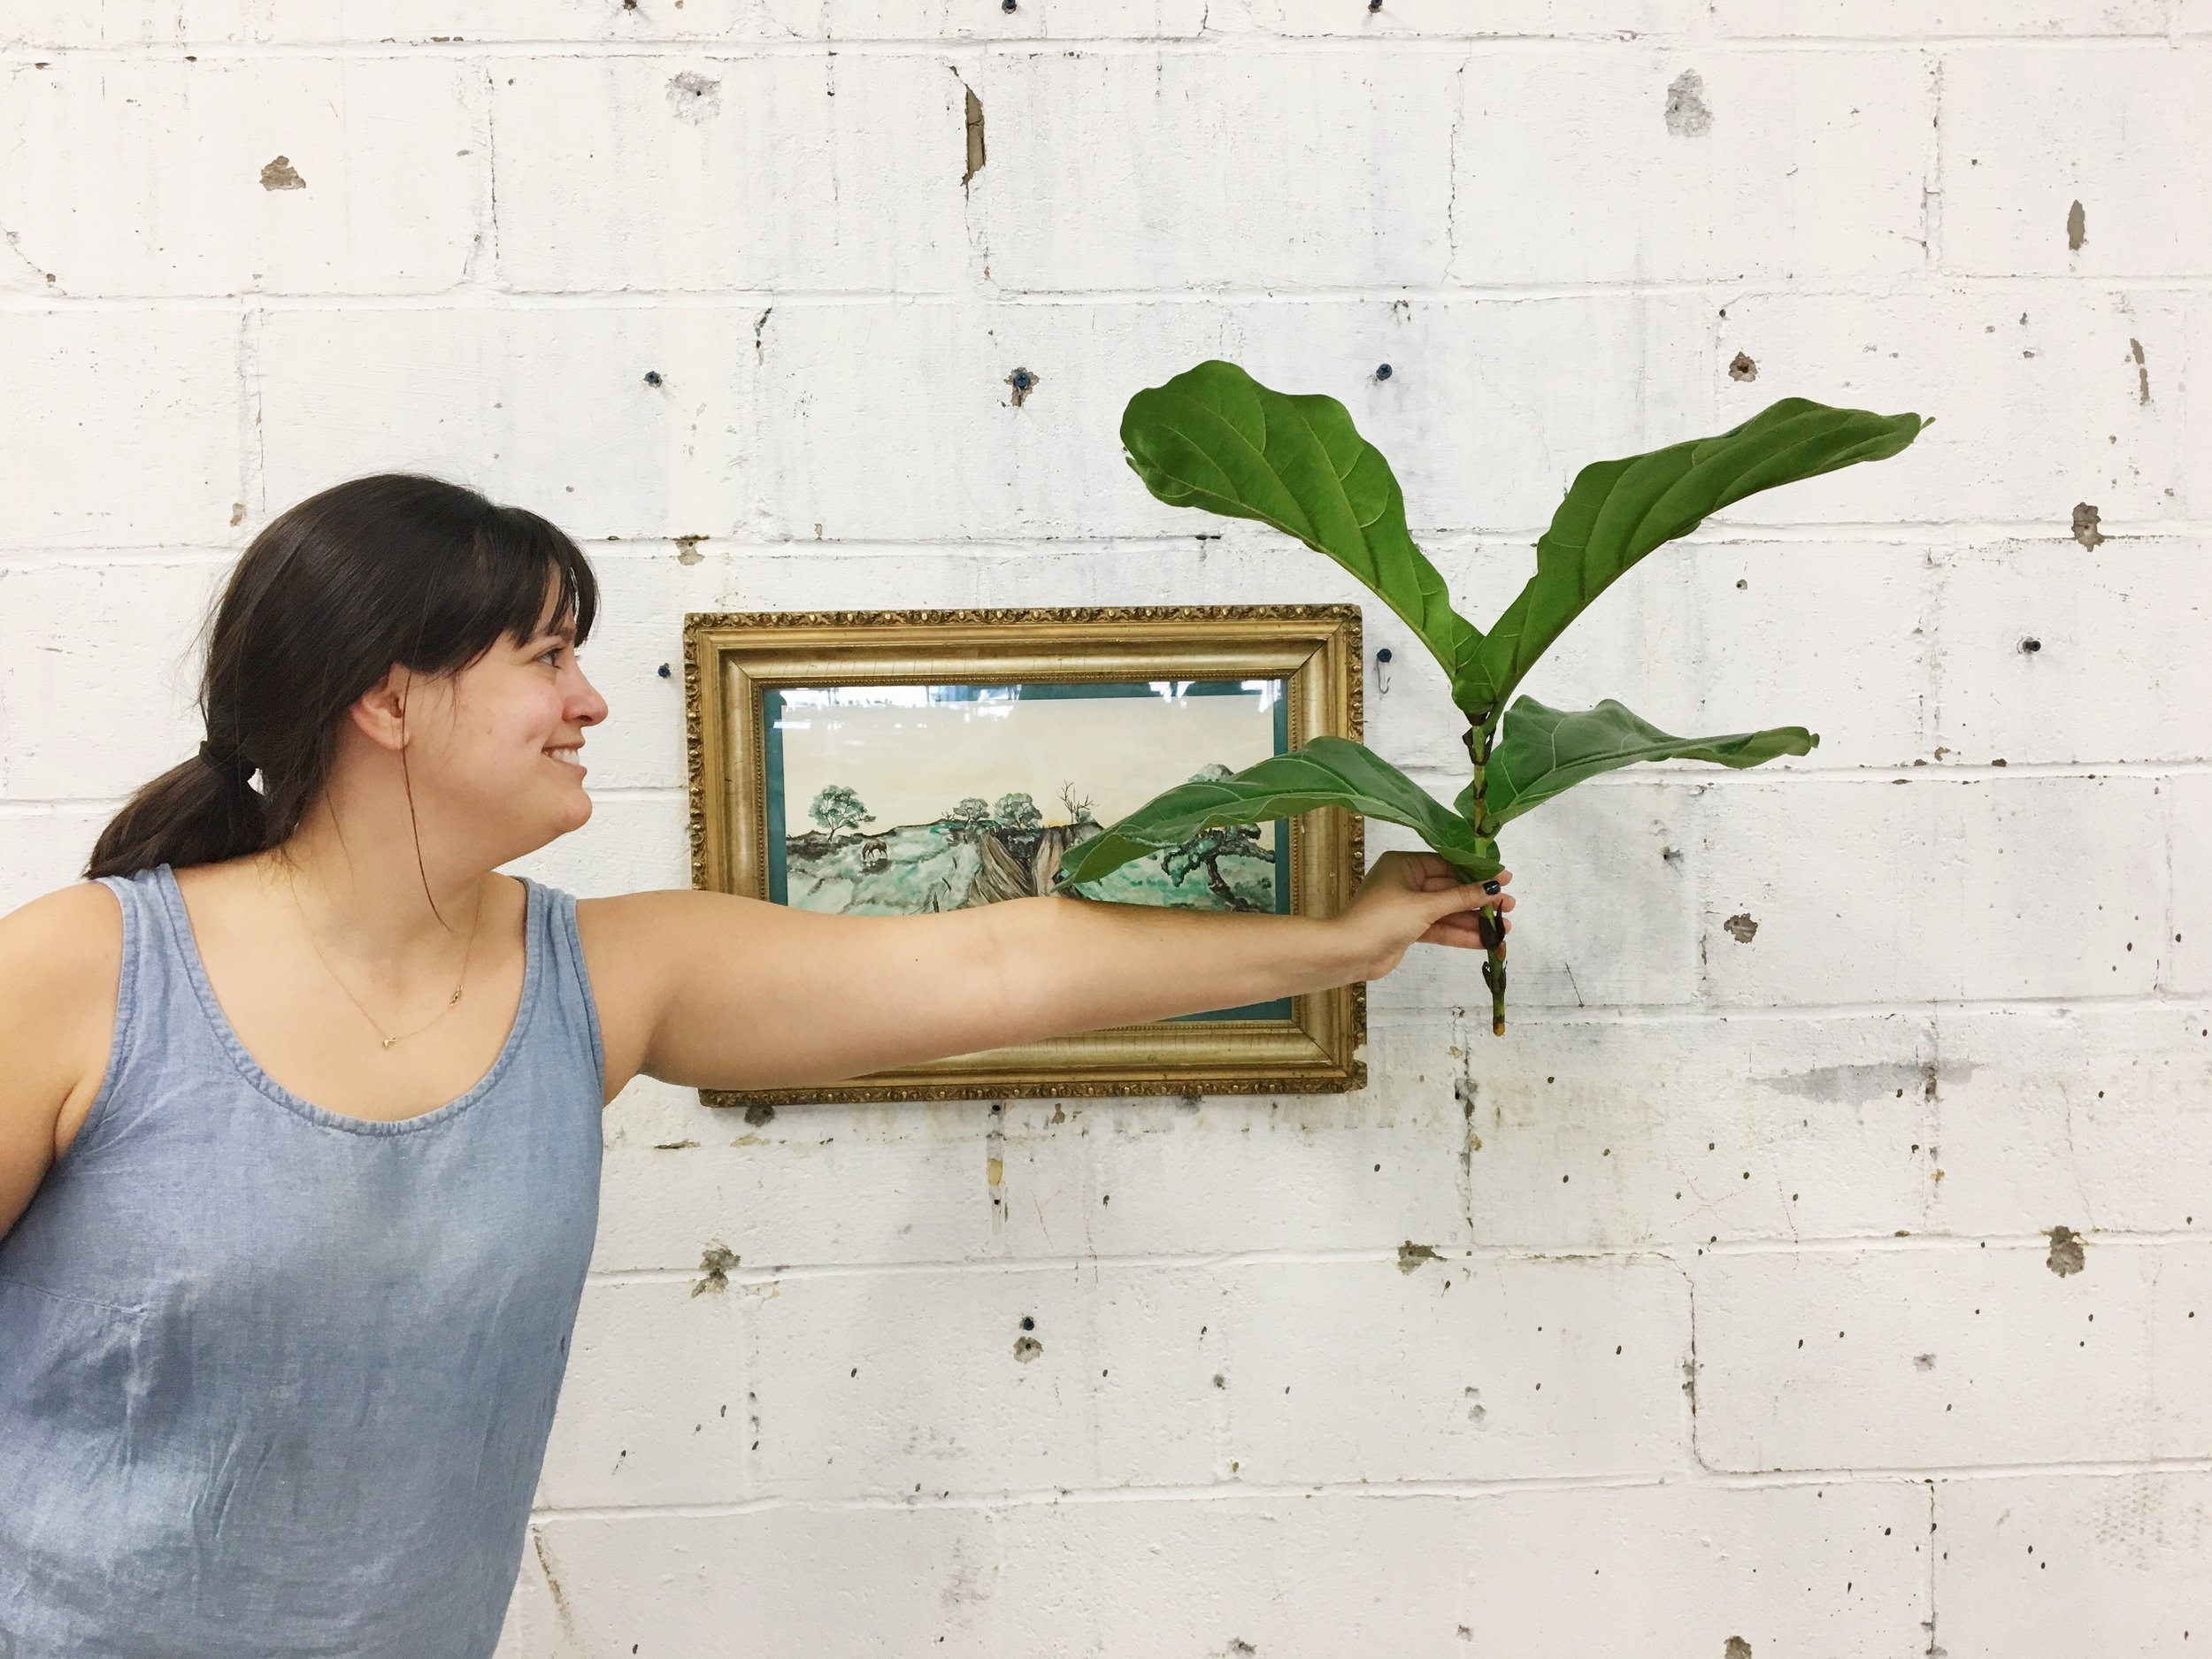 We had a live fiddle leaf fig trimming at the shop on Saturday led by our plant leader, Succulent Sara. Watch out for the full tutorial on the blog!